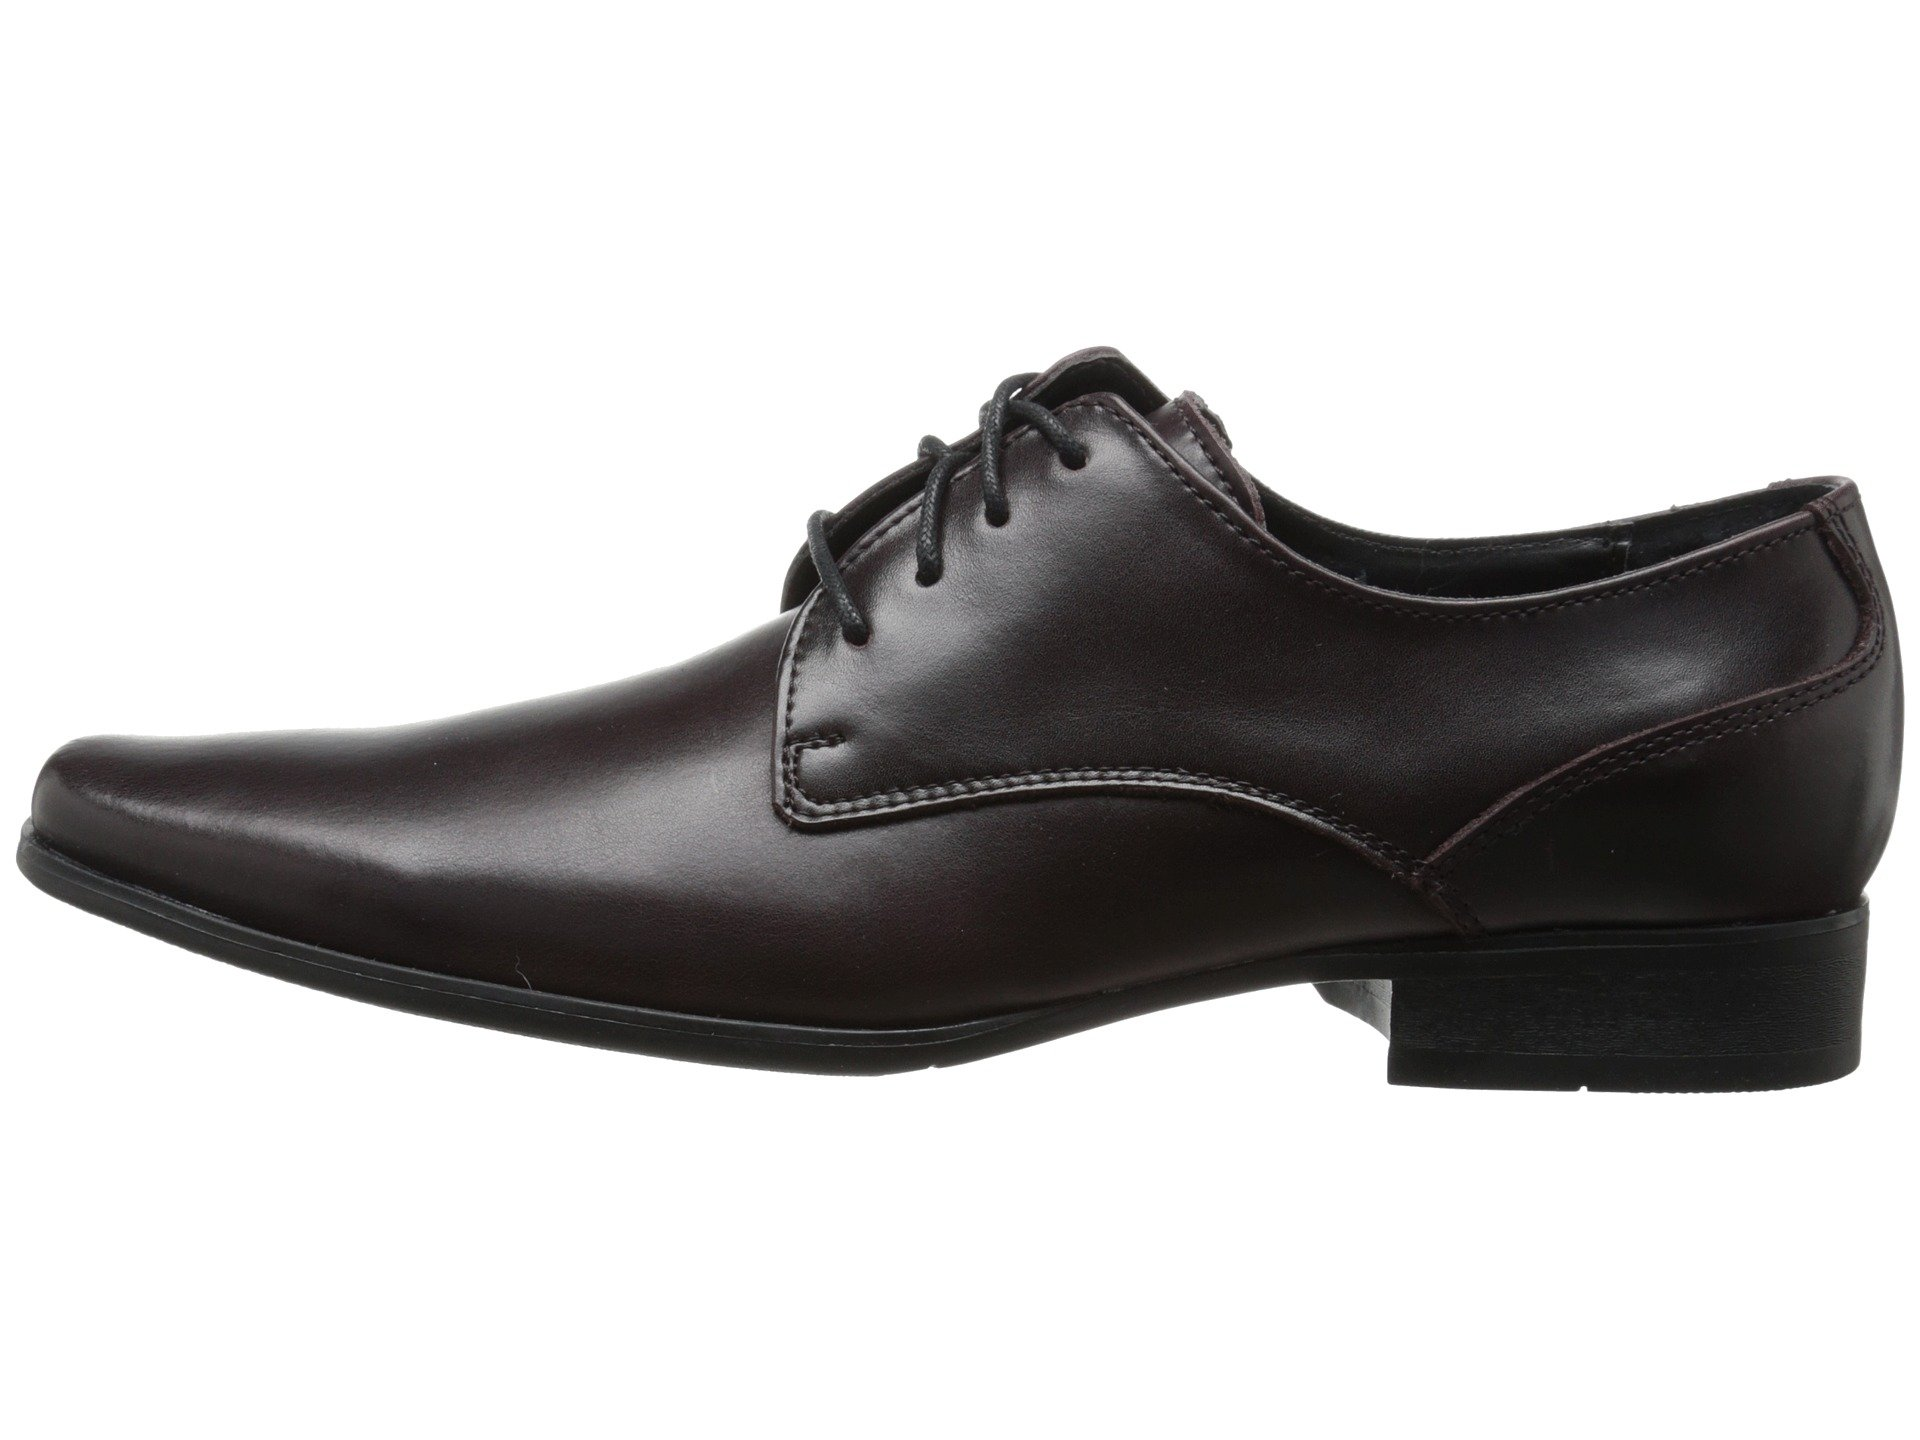 Calvin Klein Brodie Leather Shoes